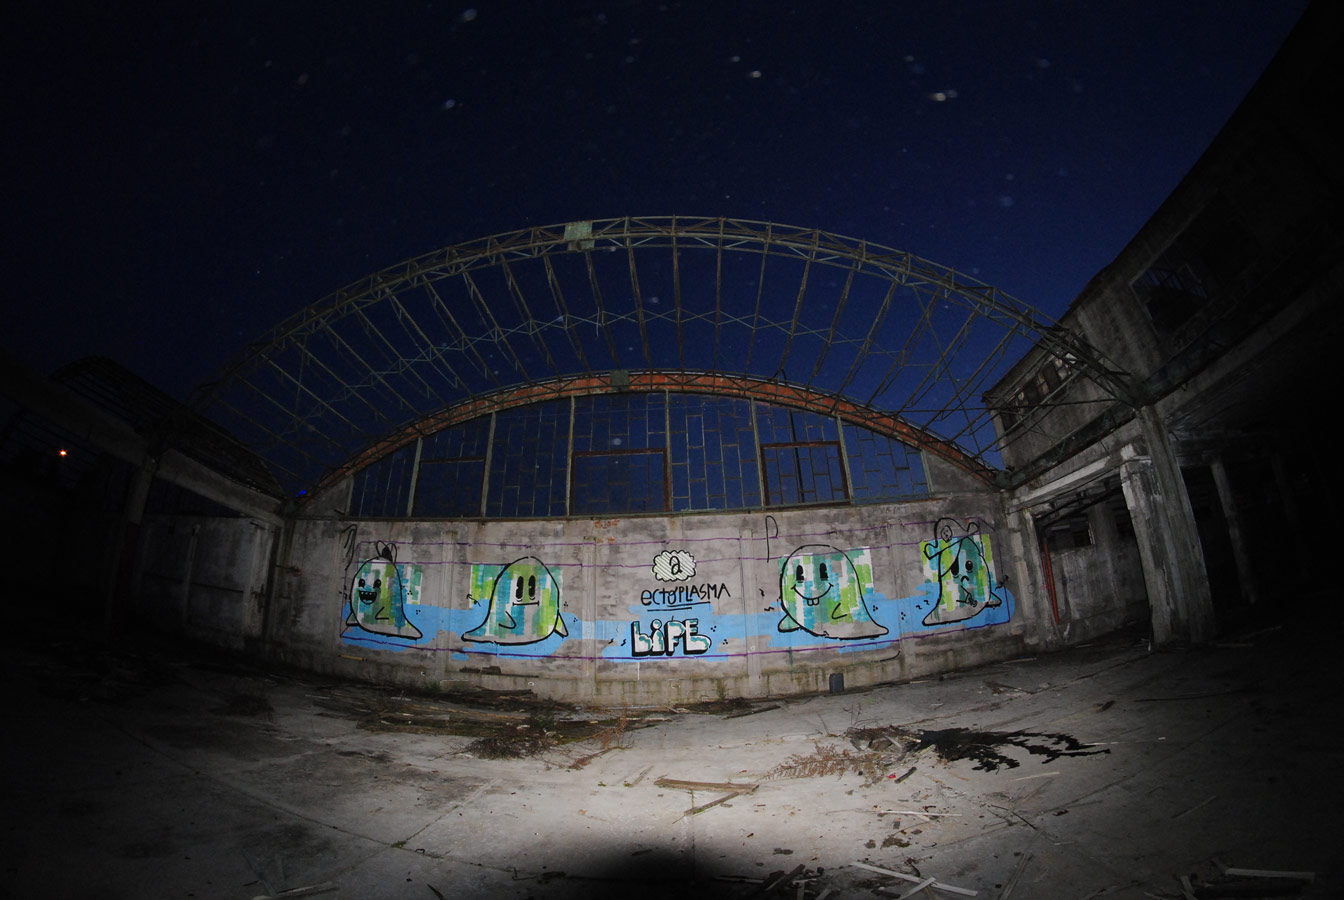 el-euro-series-of-new-pieces-in-an-abandoned-places-01